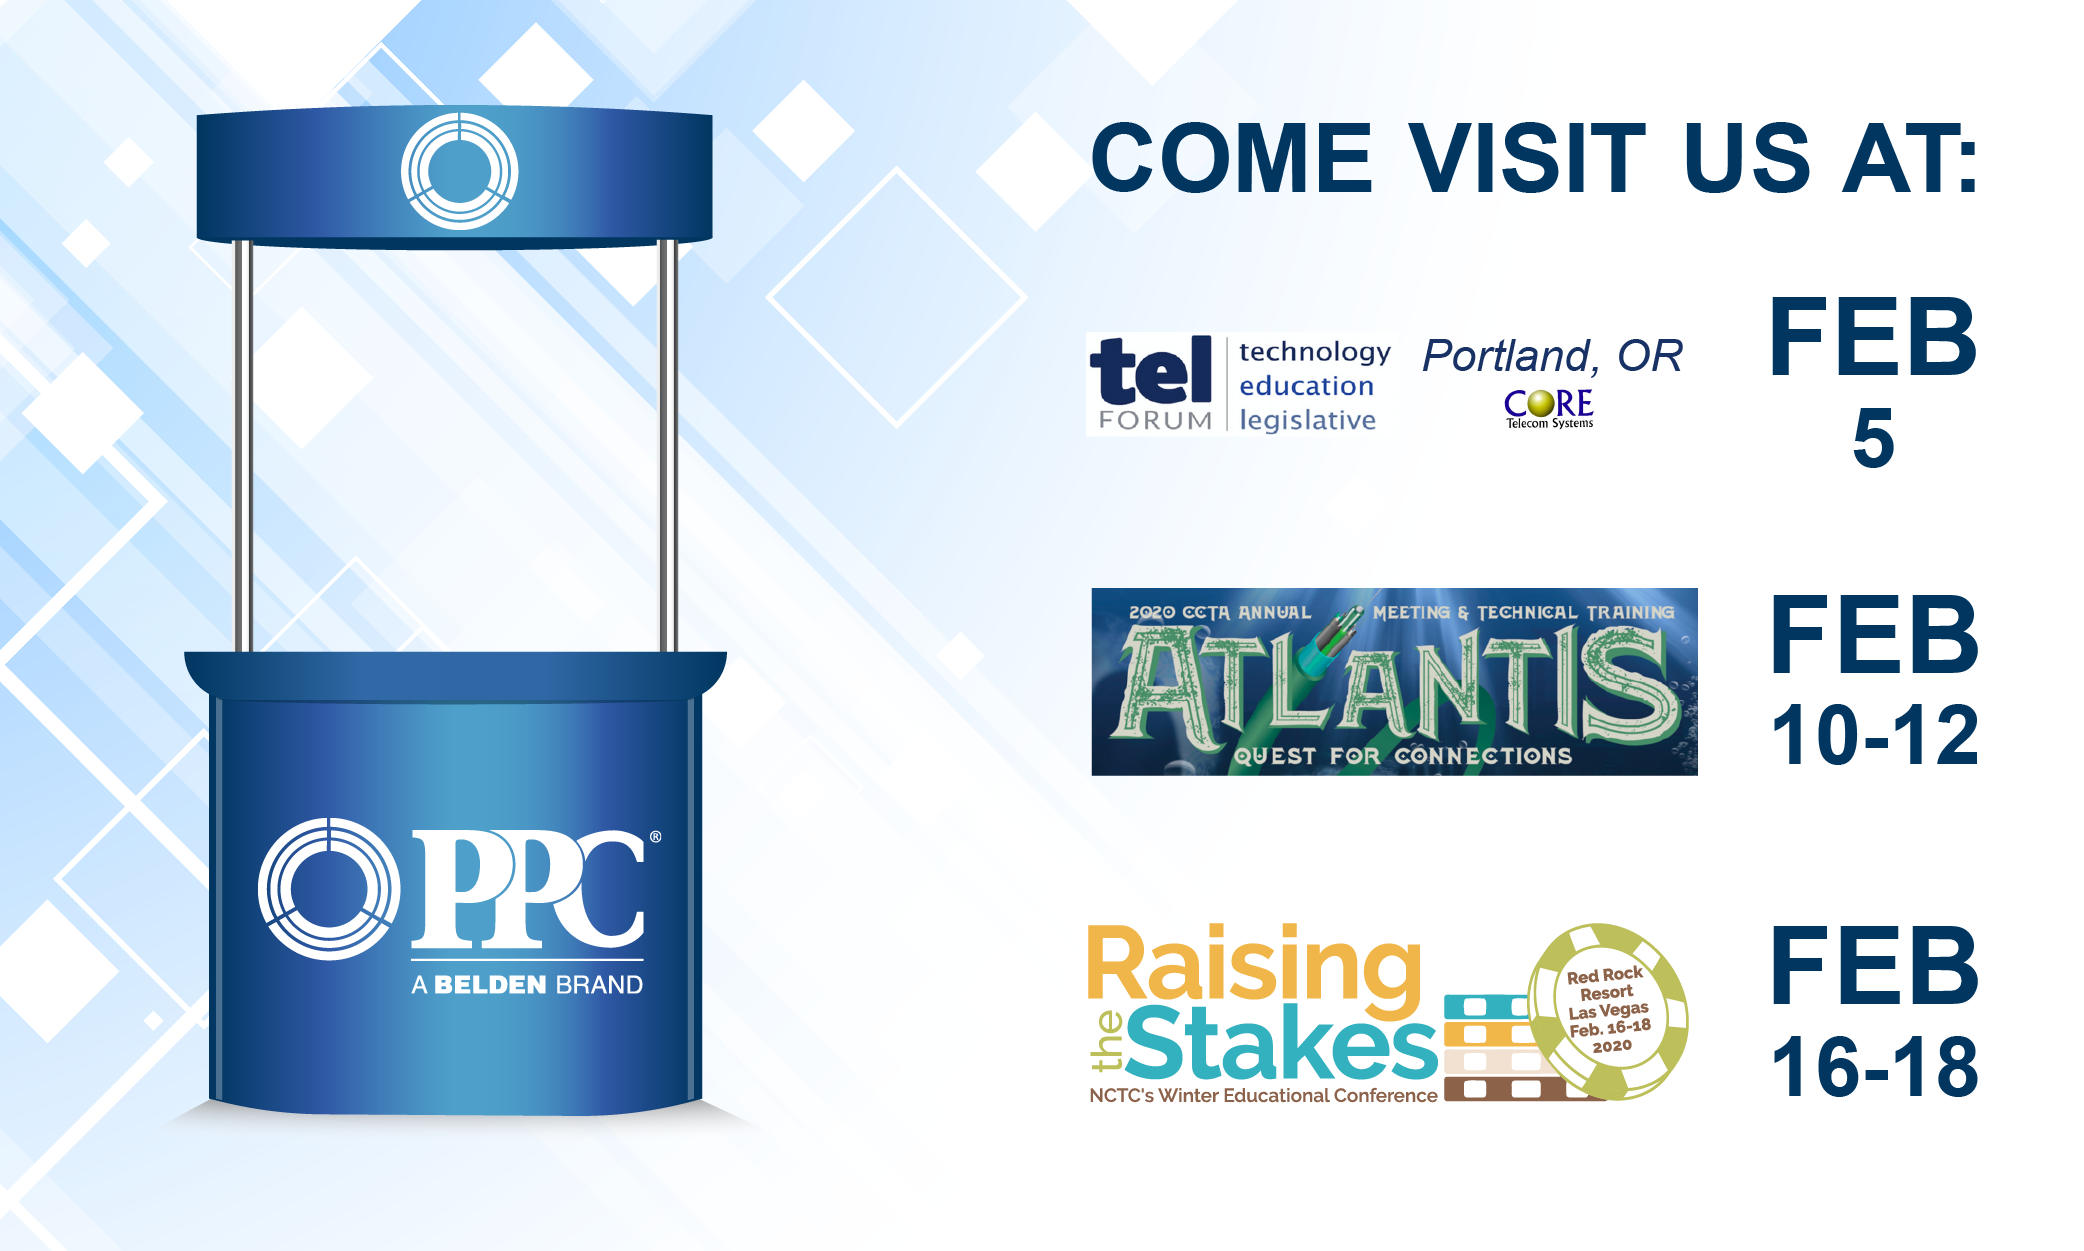 PPC to highlight fiber, broadband solutions at February trade shows